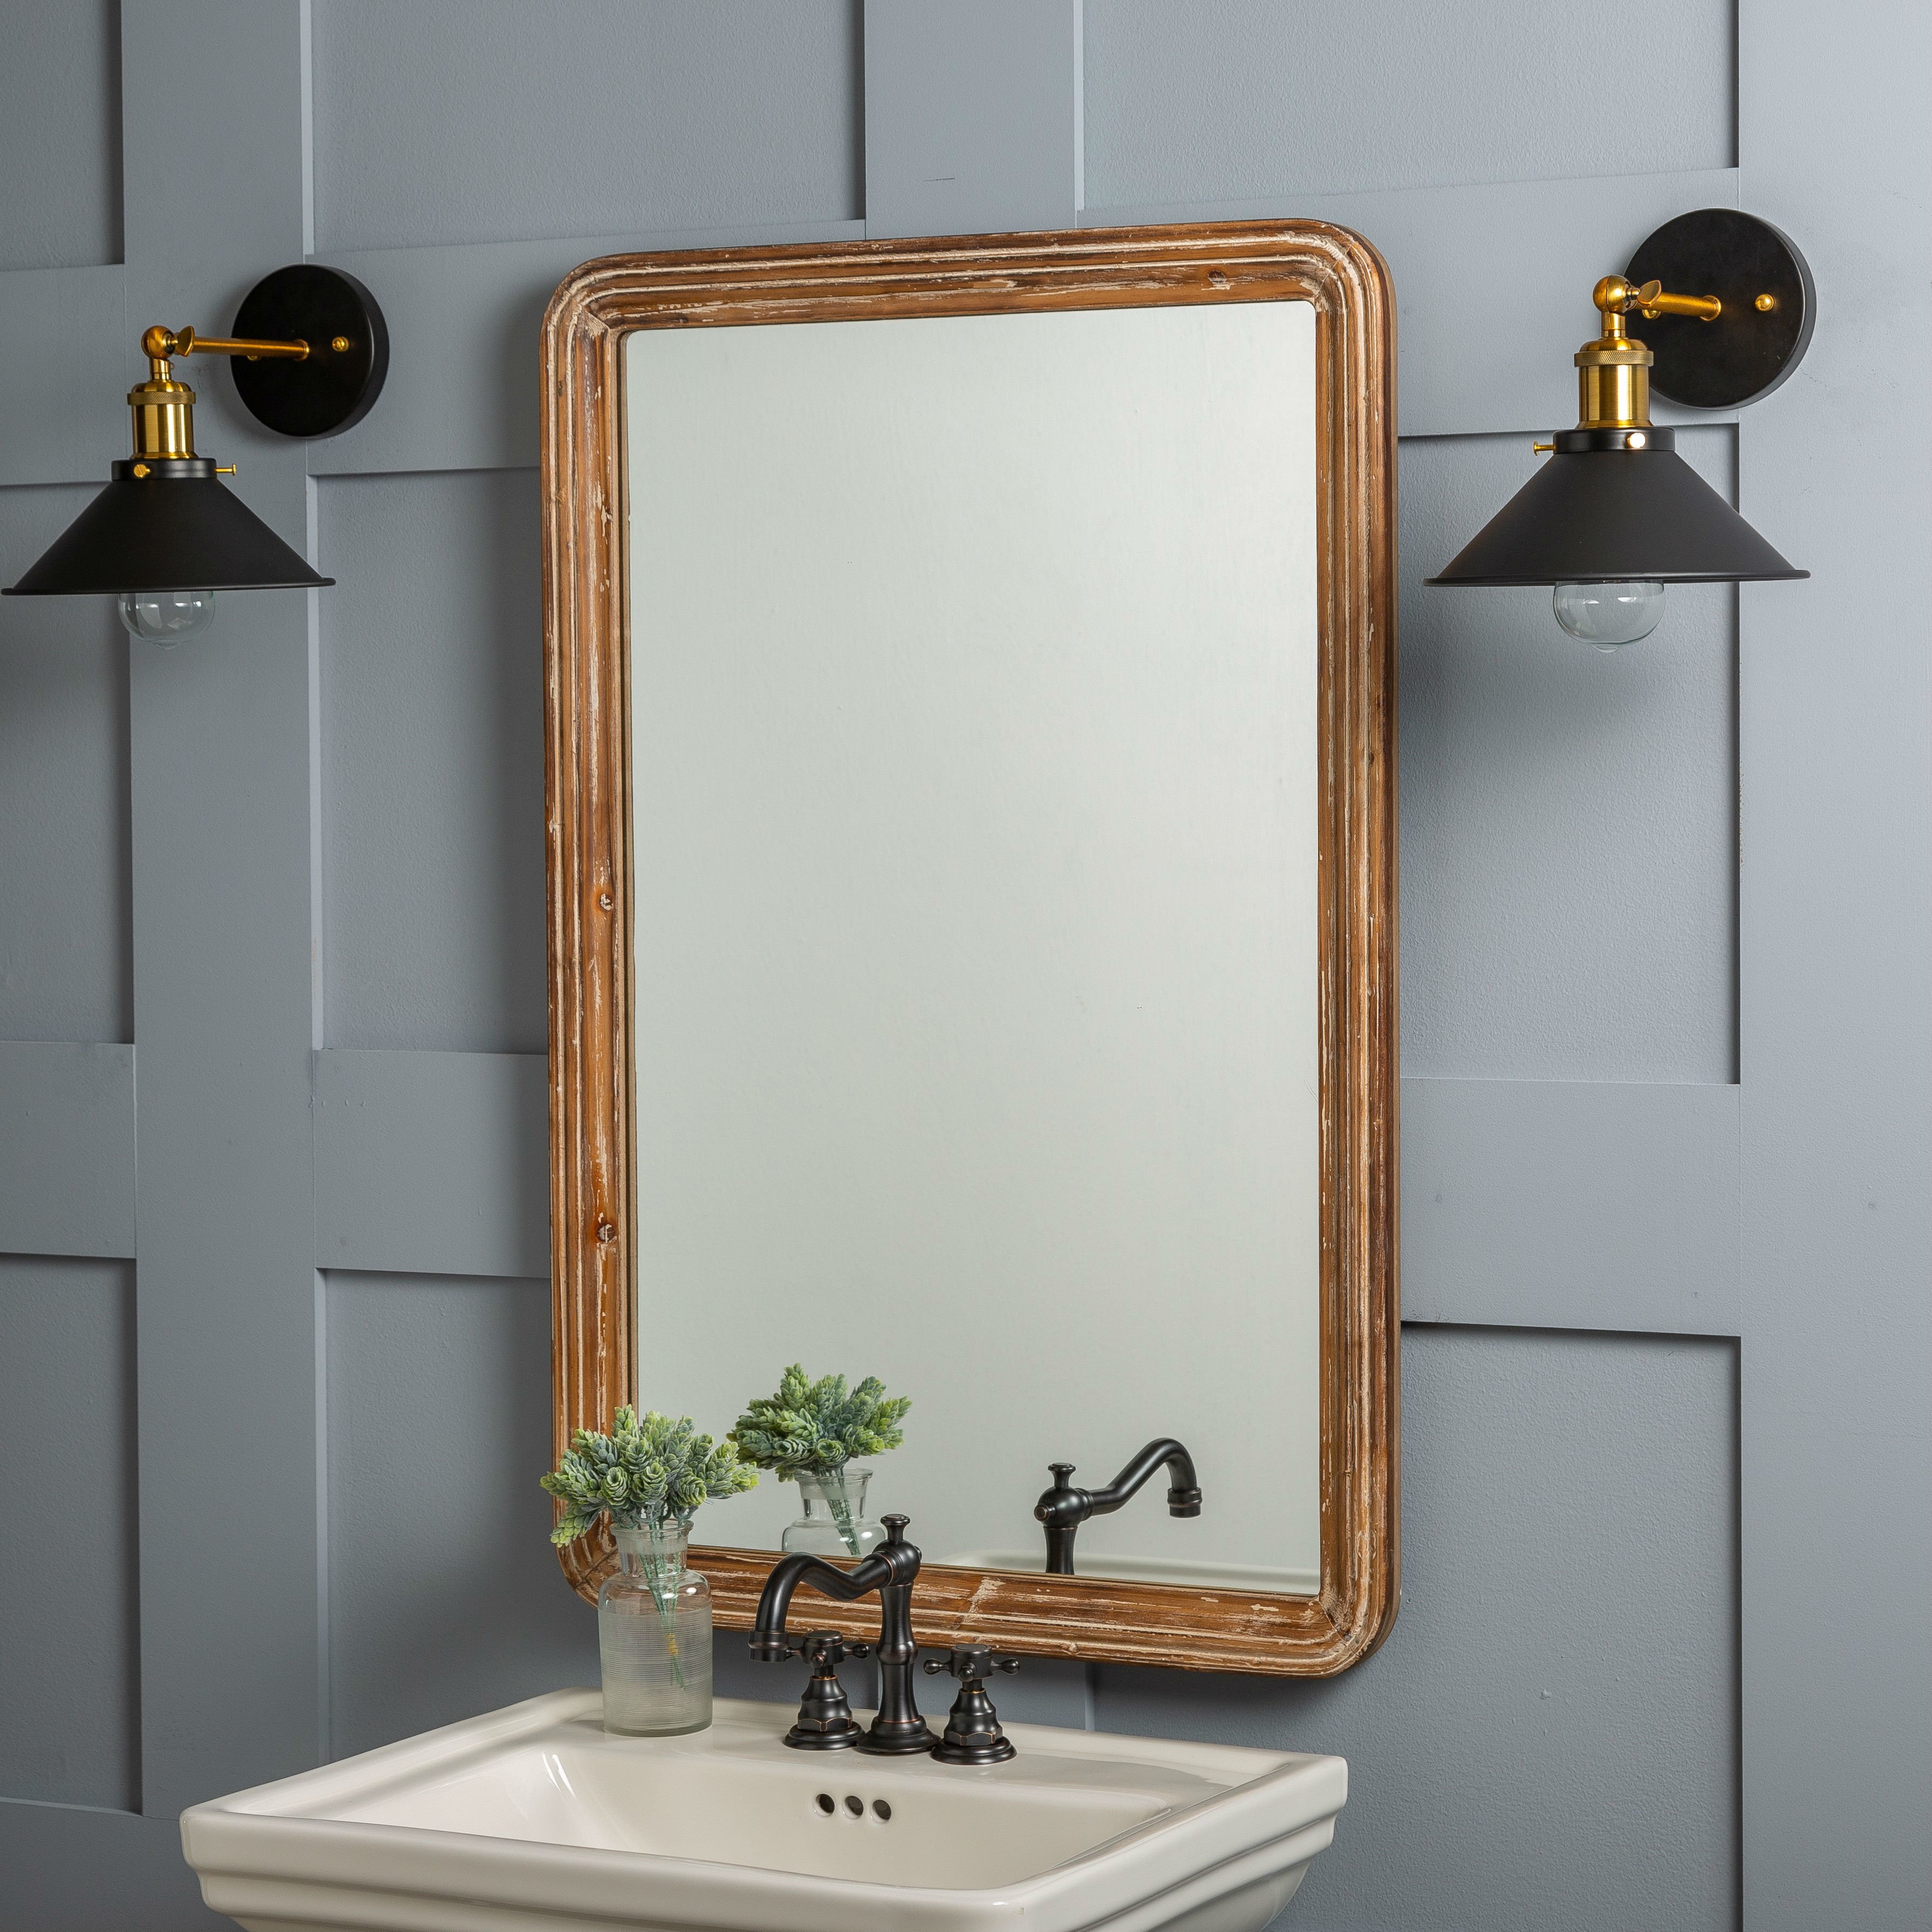 Farmhouse & Rustic Williston Forge Wall & Accent Mirrors Within Koeller Industrial Metal Wall Mirrors (View 5 of 20)